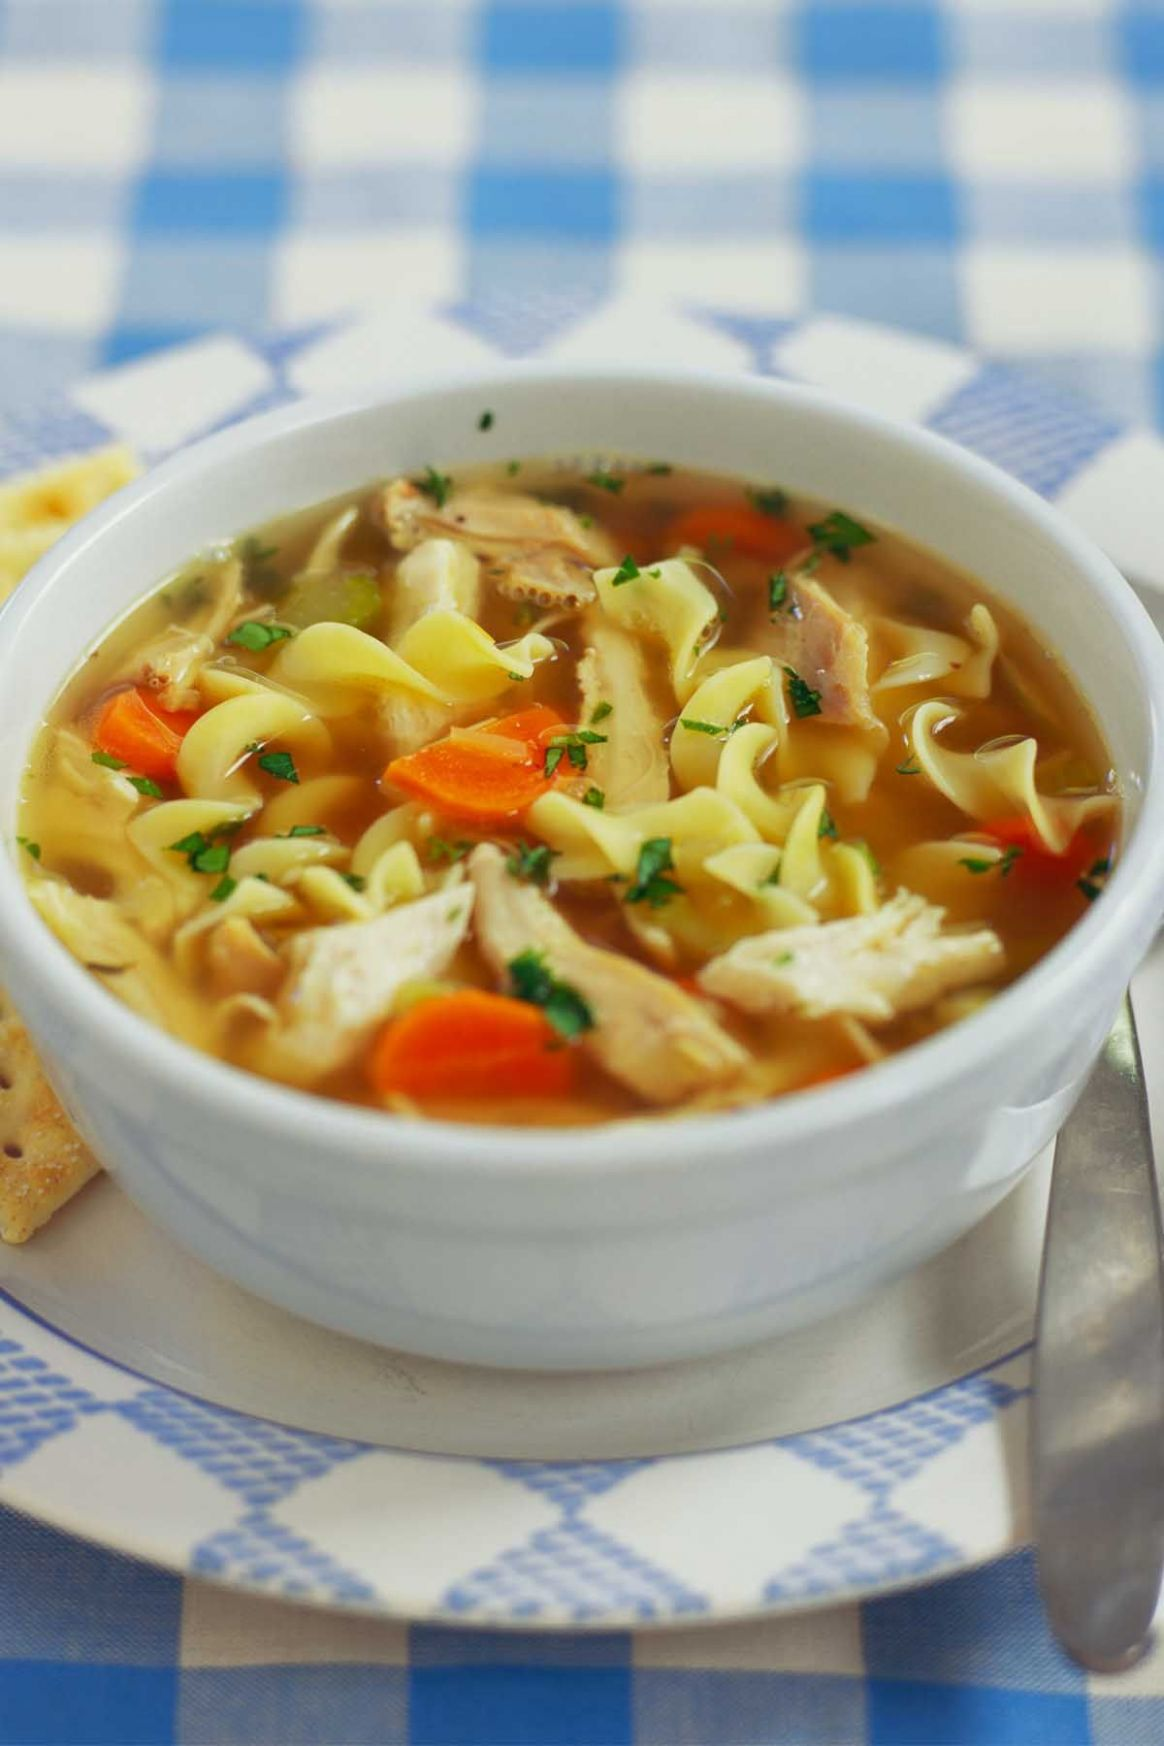 12 Best Chicken Soup Recipes - Easy Chicken Soup Recipes - Soup Recipes Good Food